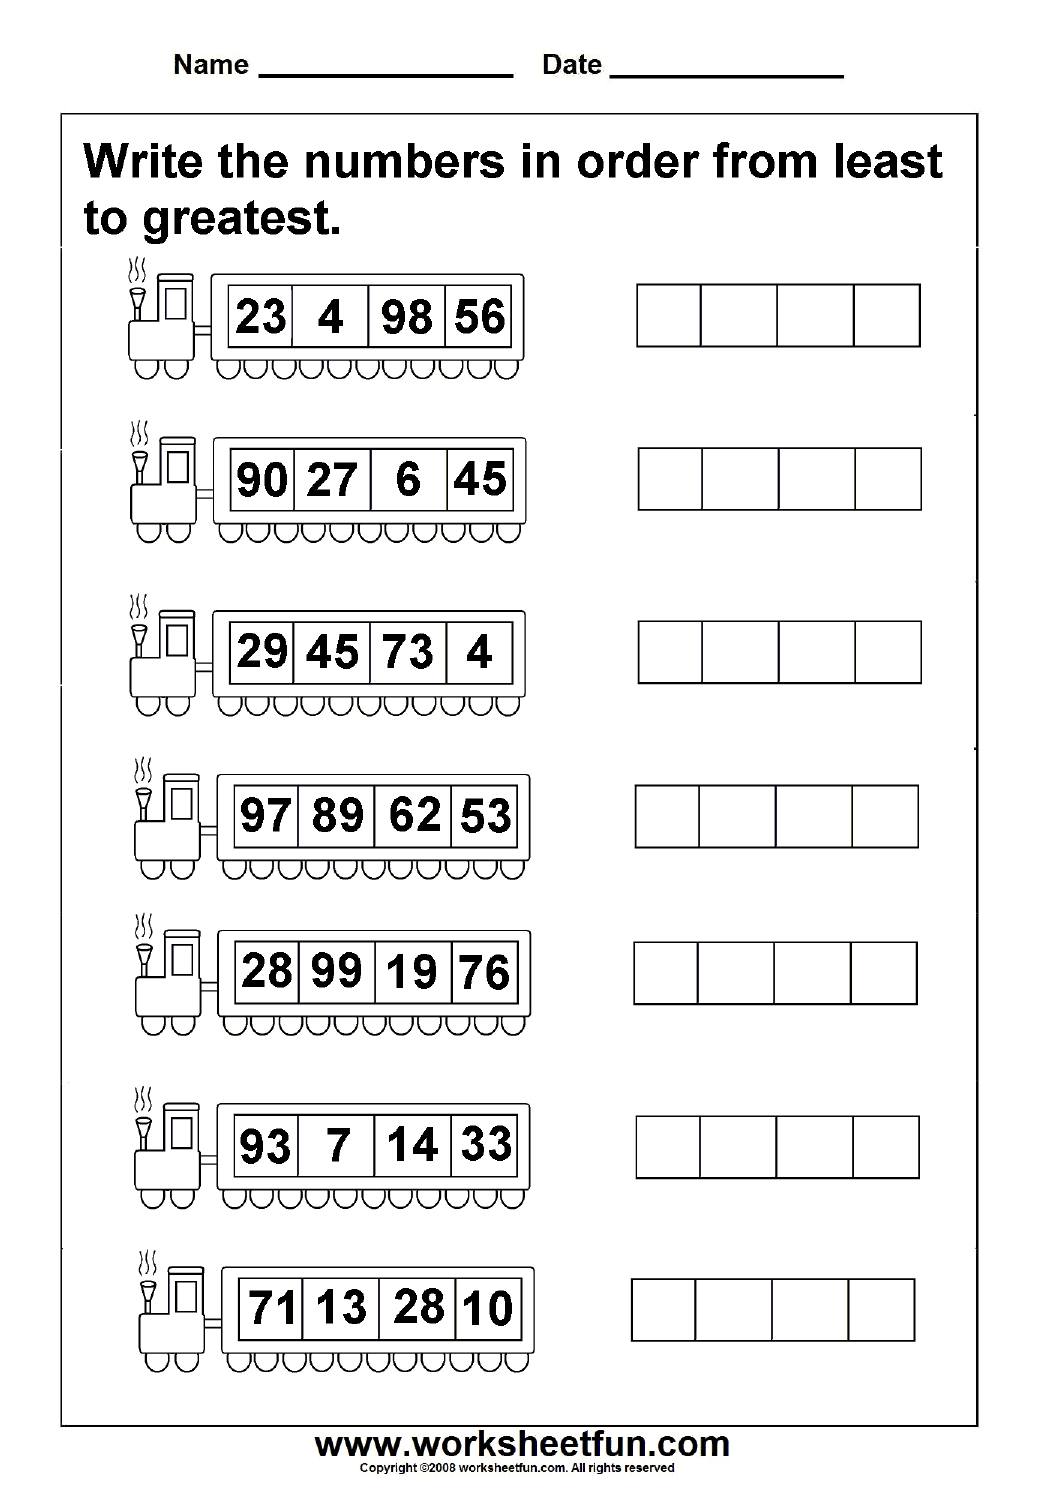 hight resolution of Least to greatest numbers – 4 Worksheets   First grade math worksheets